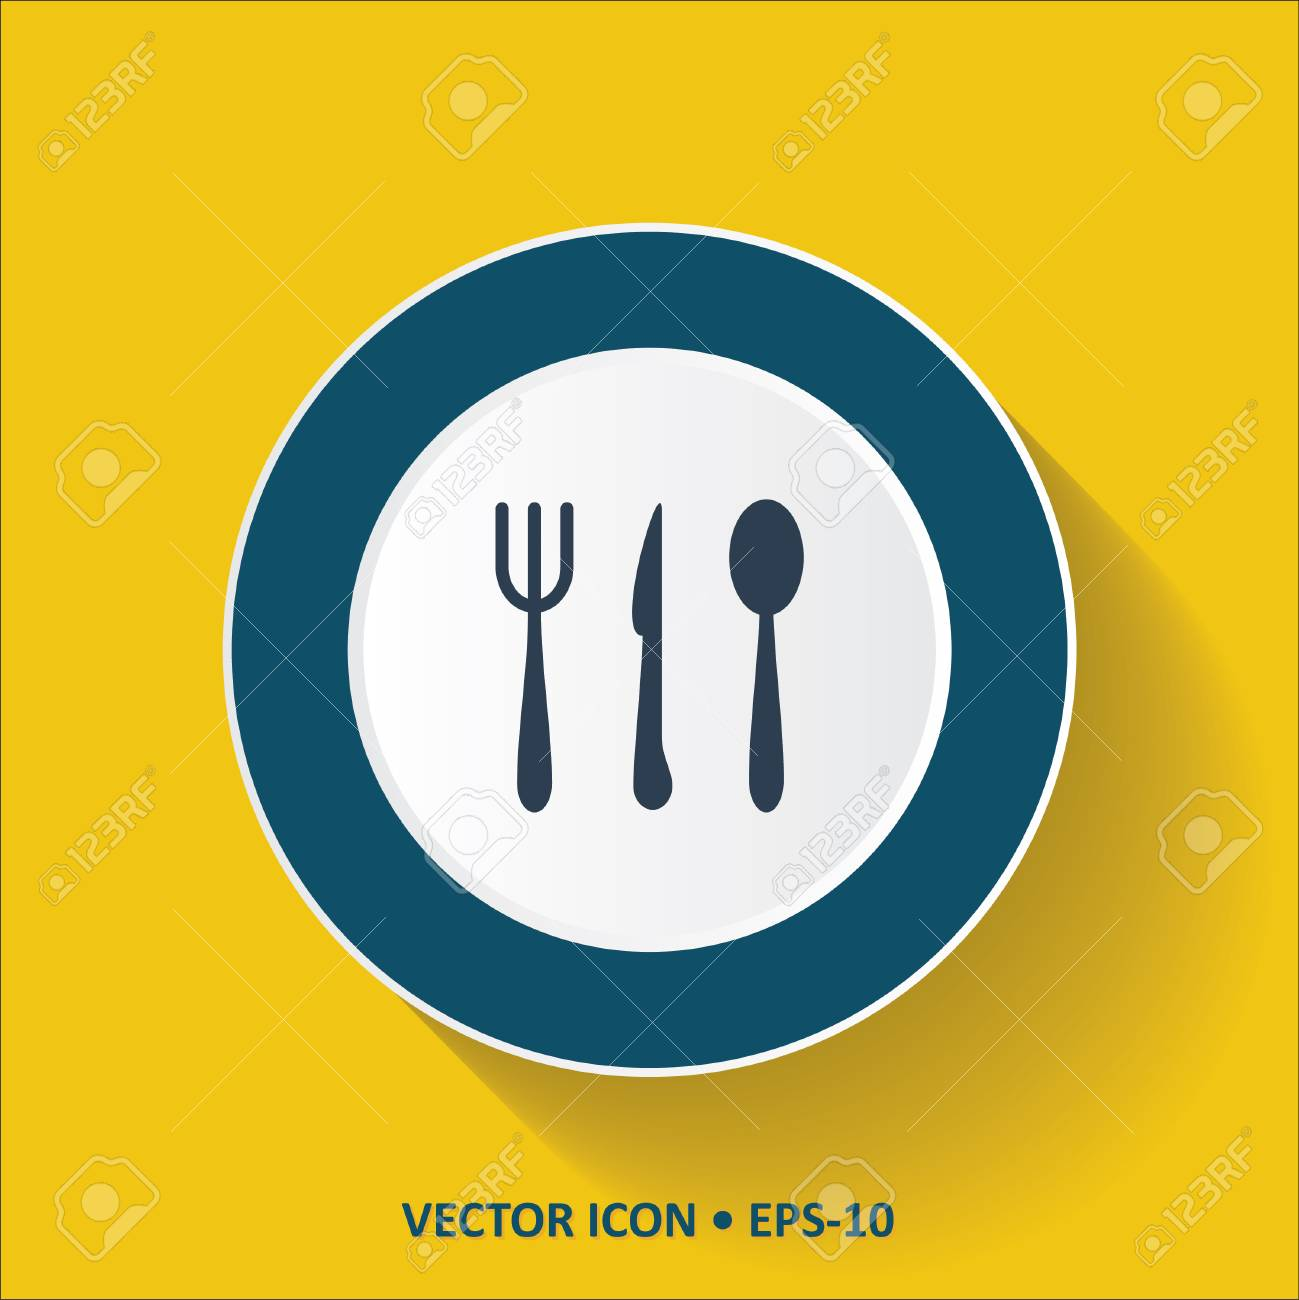 Blue Vector Icon Of Restaurant On Yellow Color Background With Royalty Free Cliparts Vectors And Stock Illustration Image 45603926